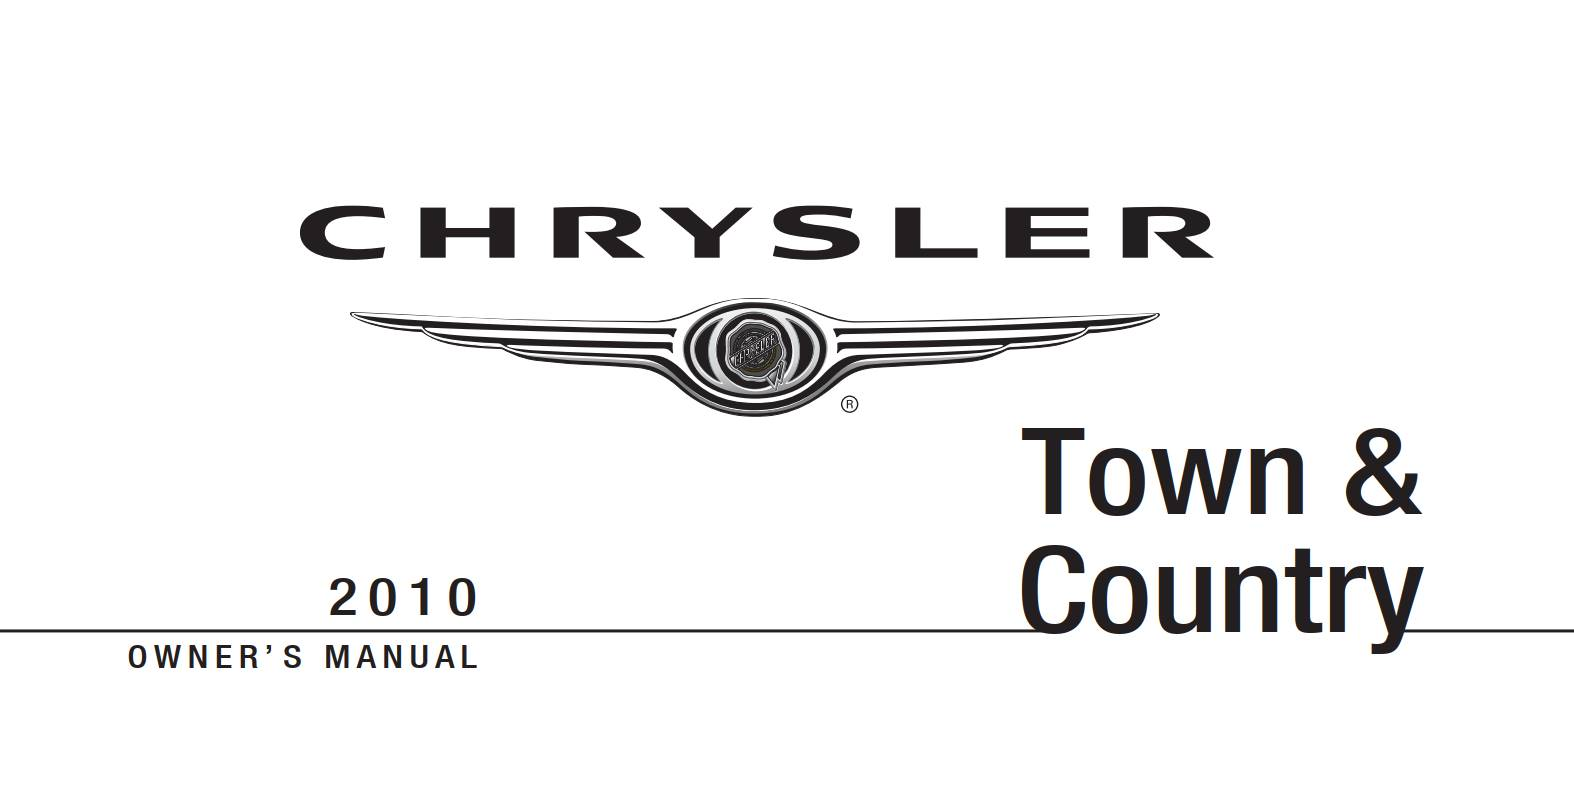 Chrysler Town And Country 2010 Owner's Manual